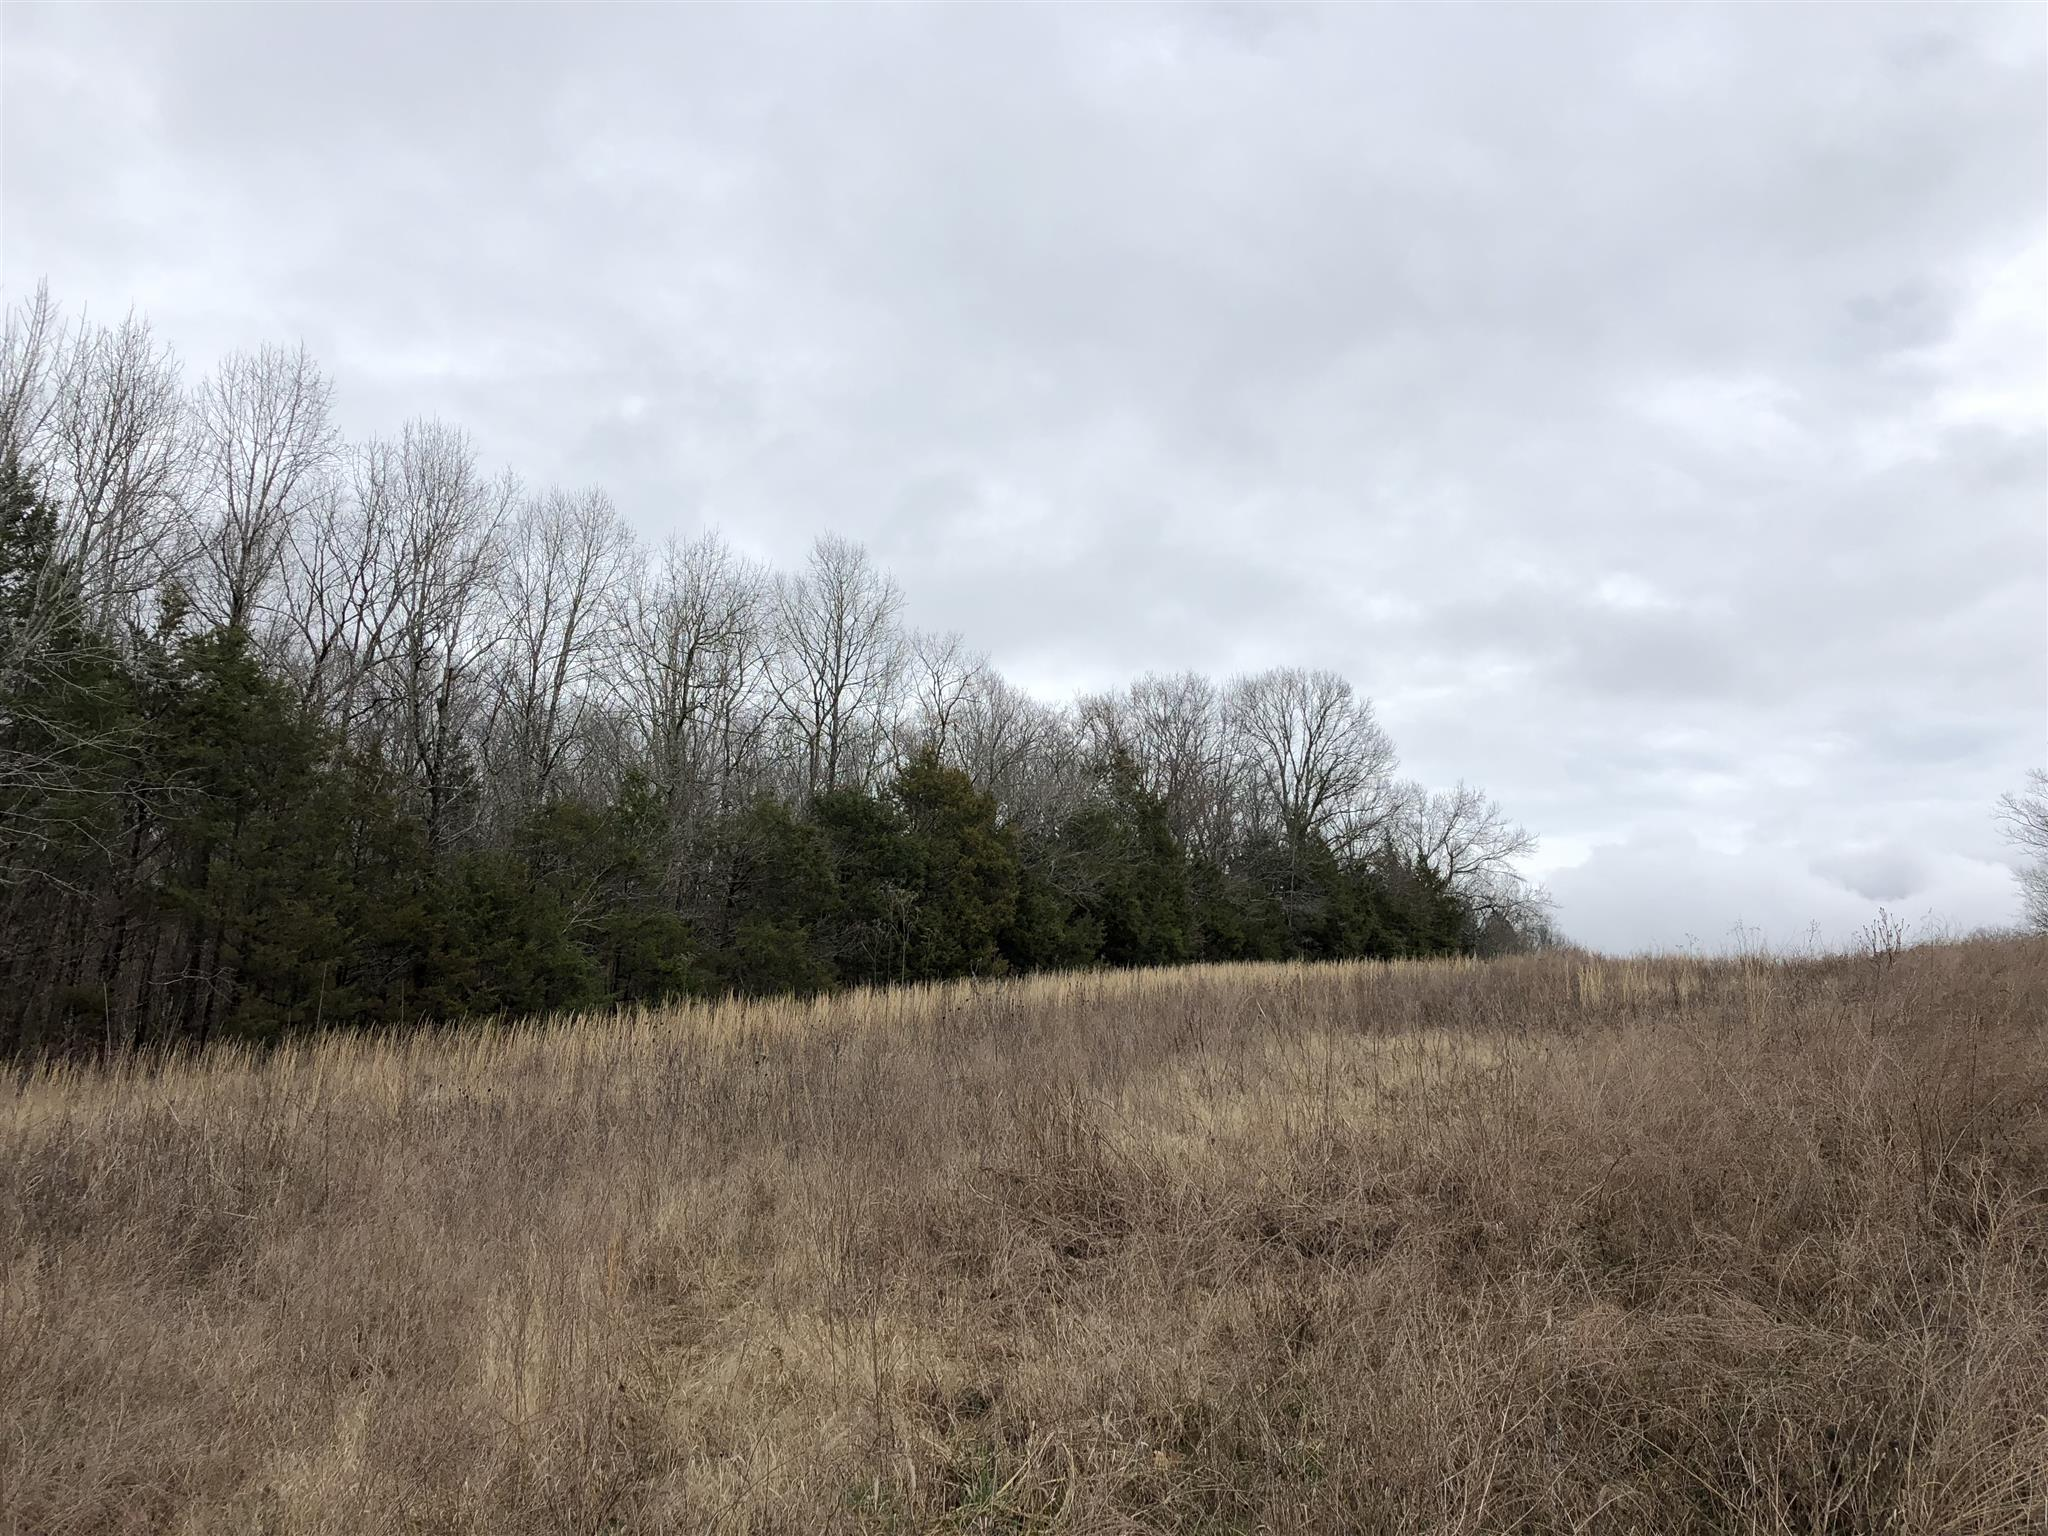 Tract 1 and 2 at 4920 Smithson Road in Williamson County.  Wonderful wooded property with other houses nearby on Smithson Road.  Utility easement runs through both but no power lines.  Soil Scientist says need an alternative system, no perk site.  Please do not block easement to property in rear.